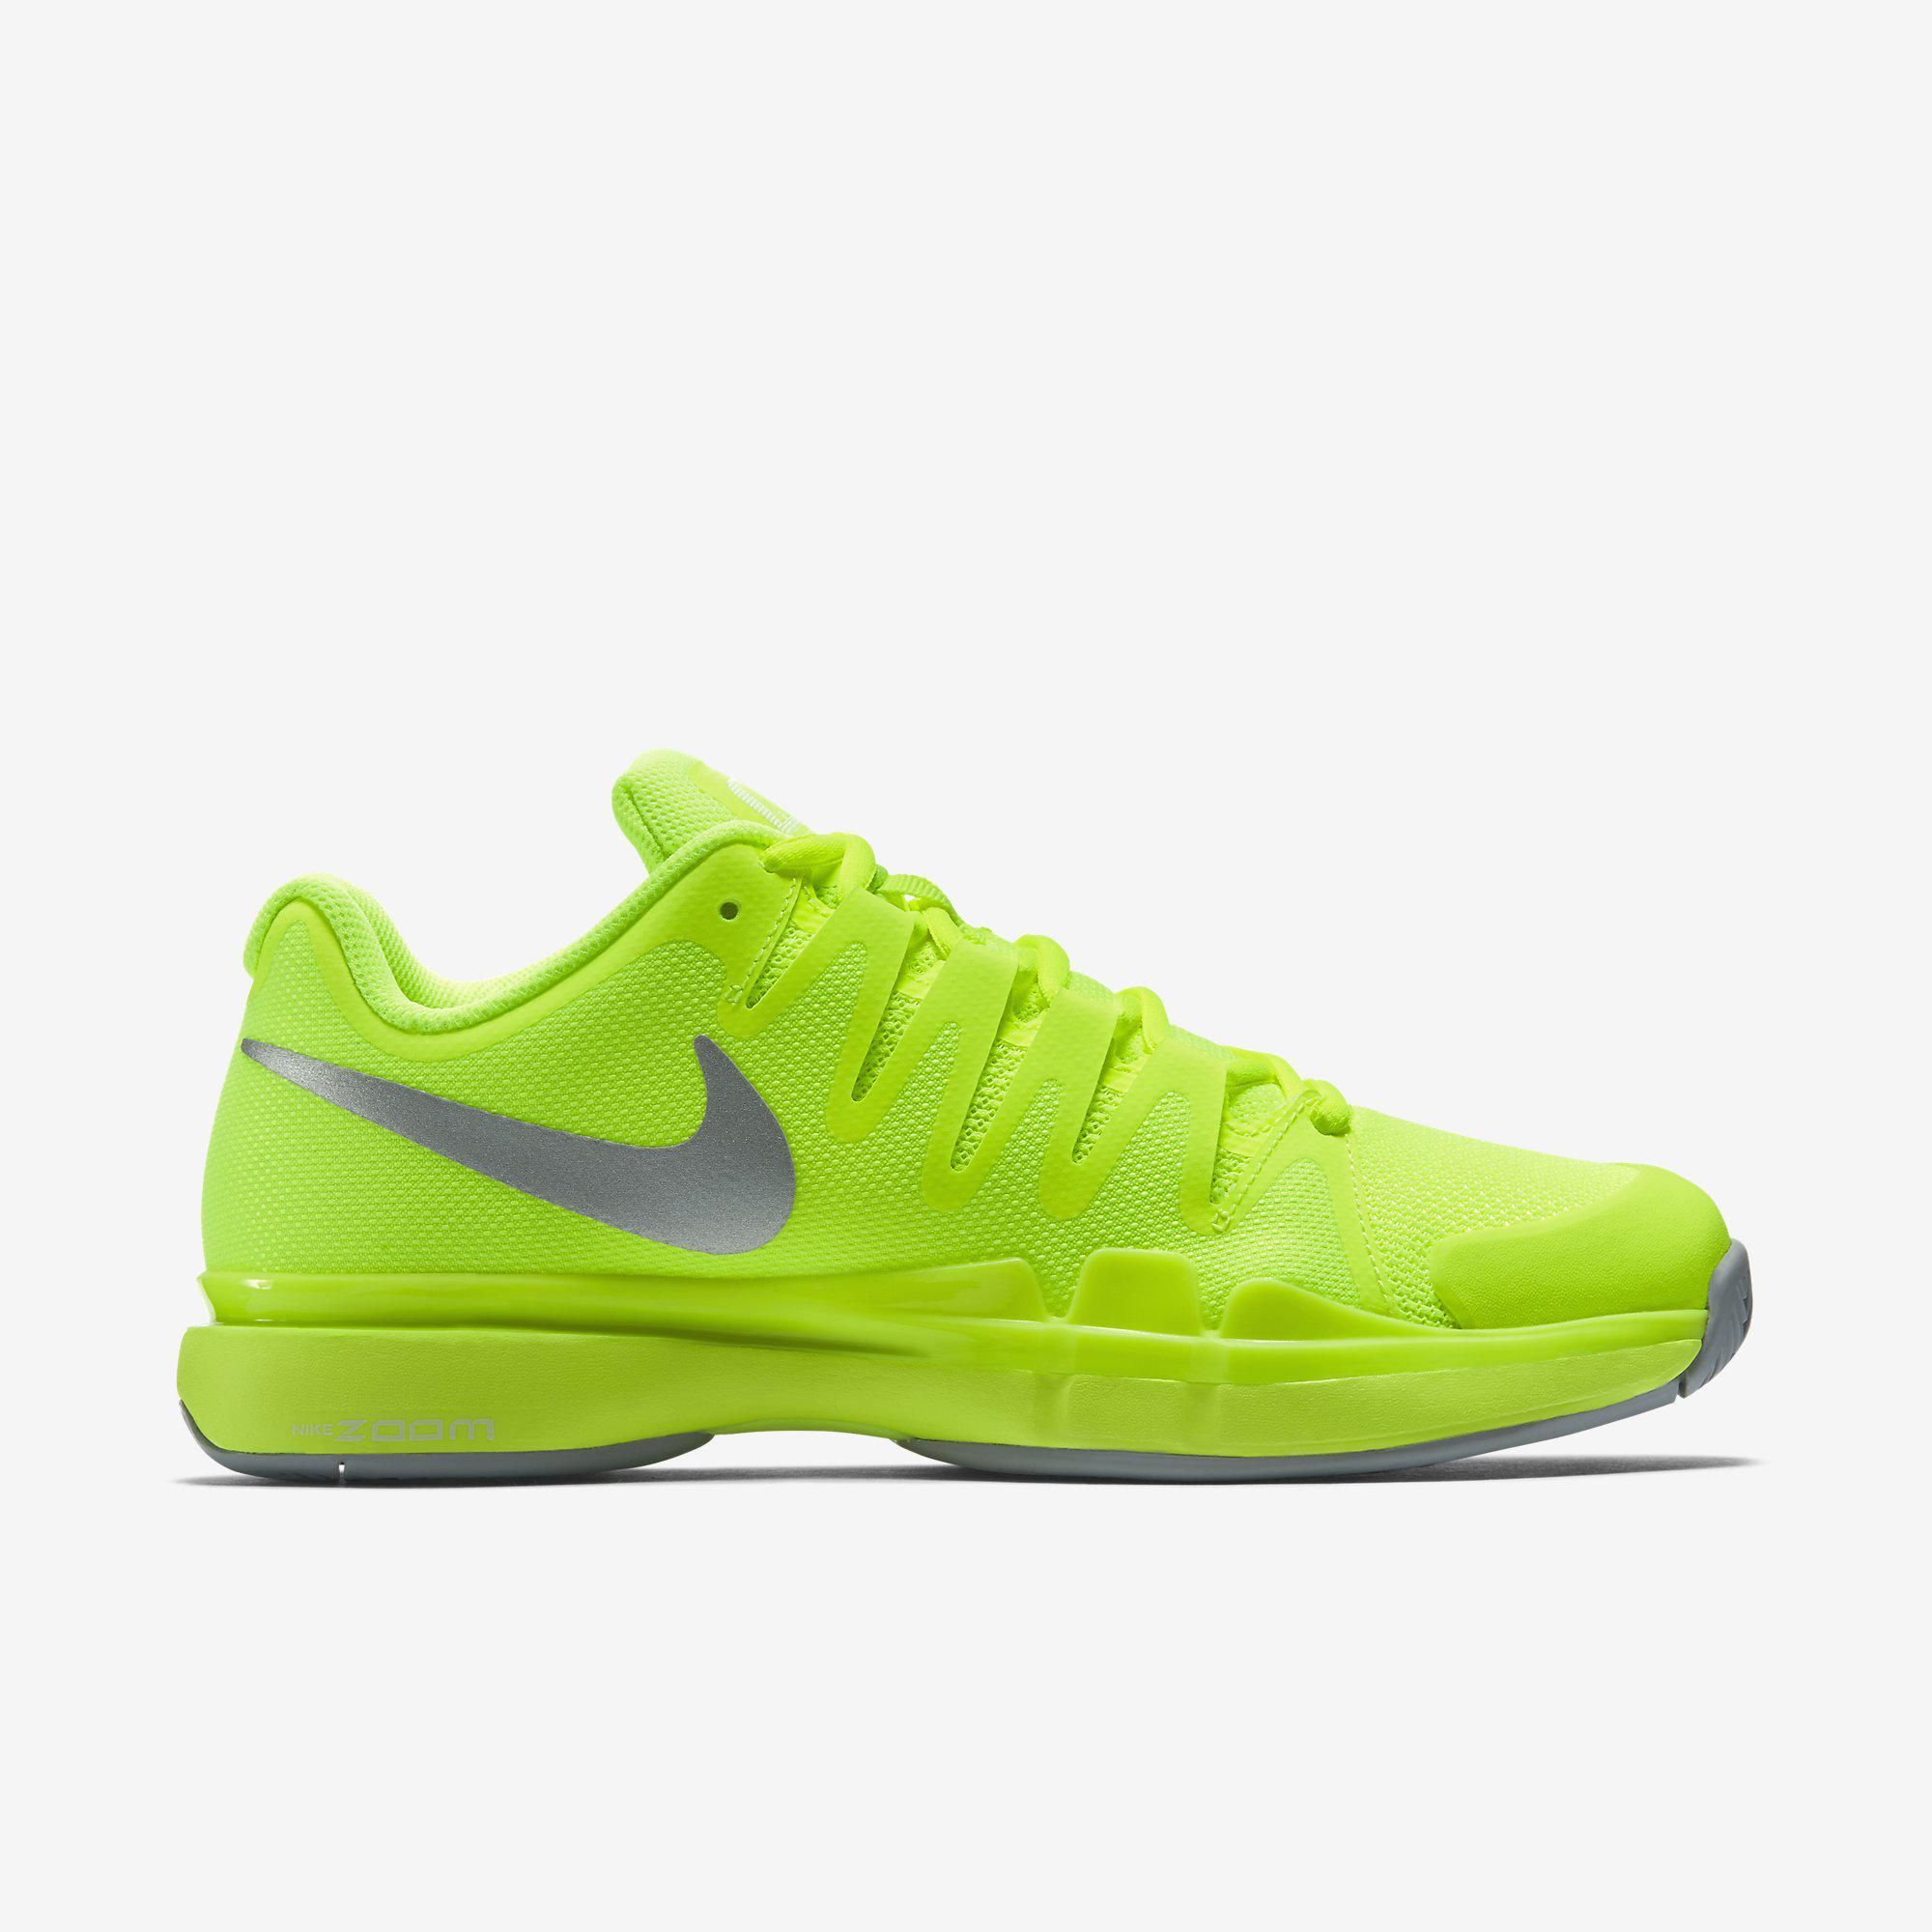 nike tennis shoes volt